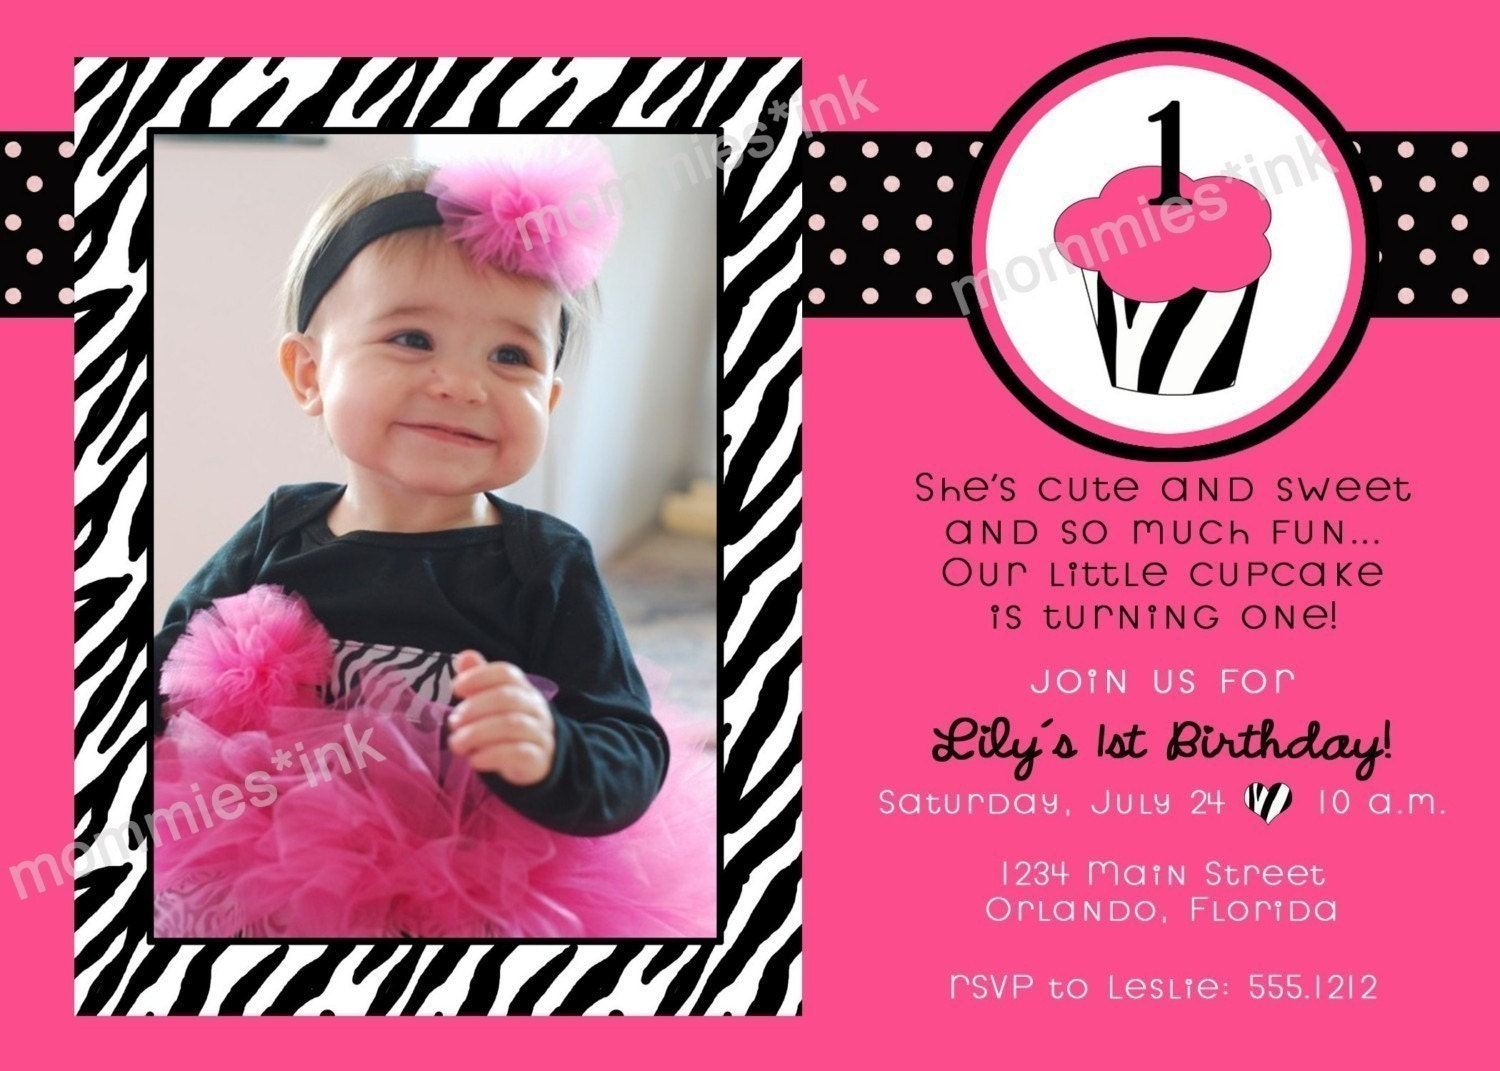 OT Need Help With Wording For ODDs 10th Birthday Party – 10th Birthday Invitations